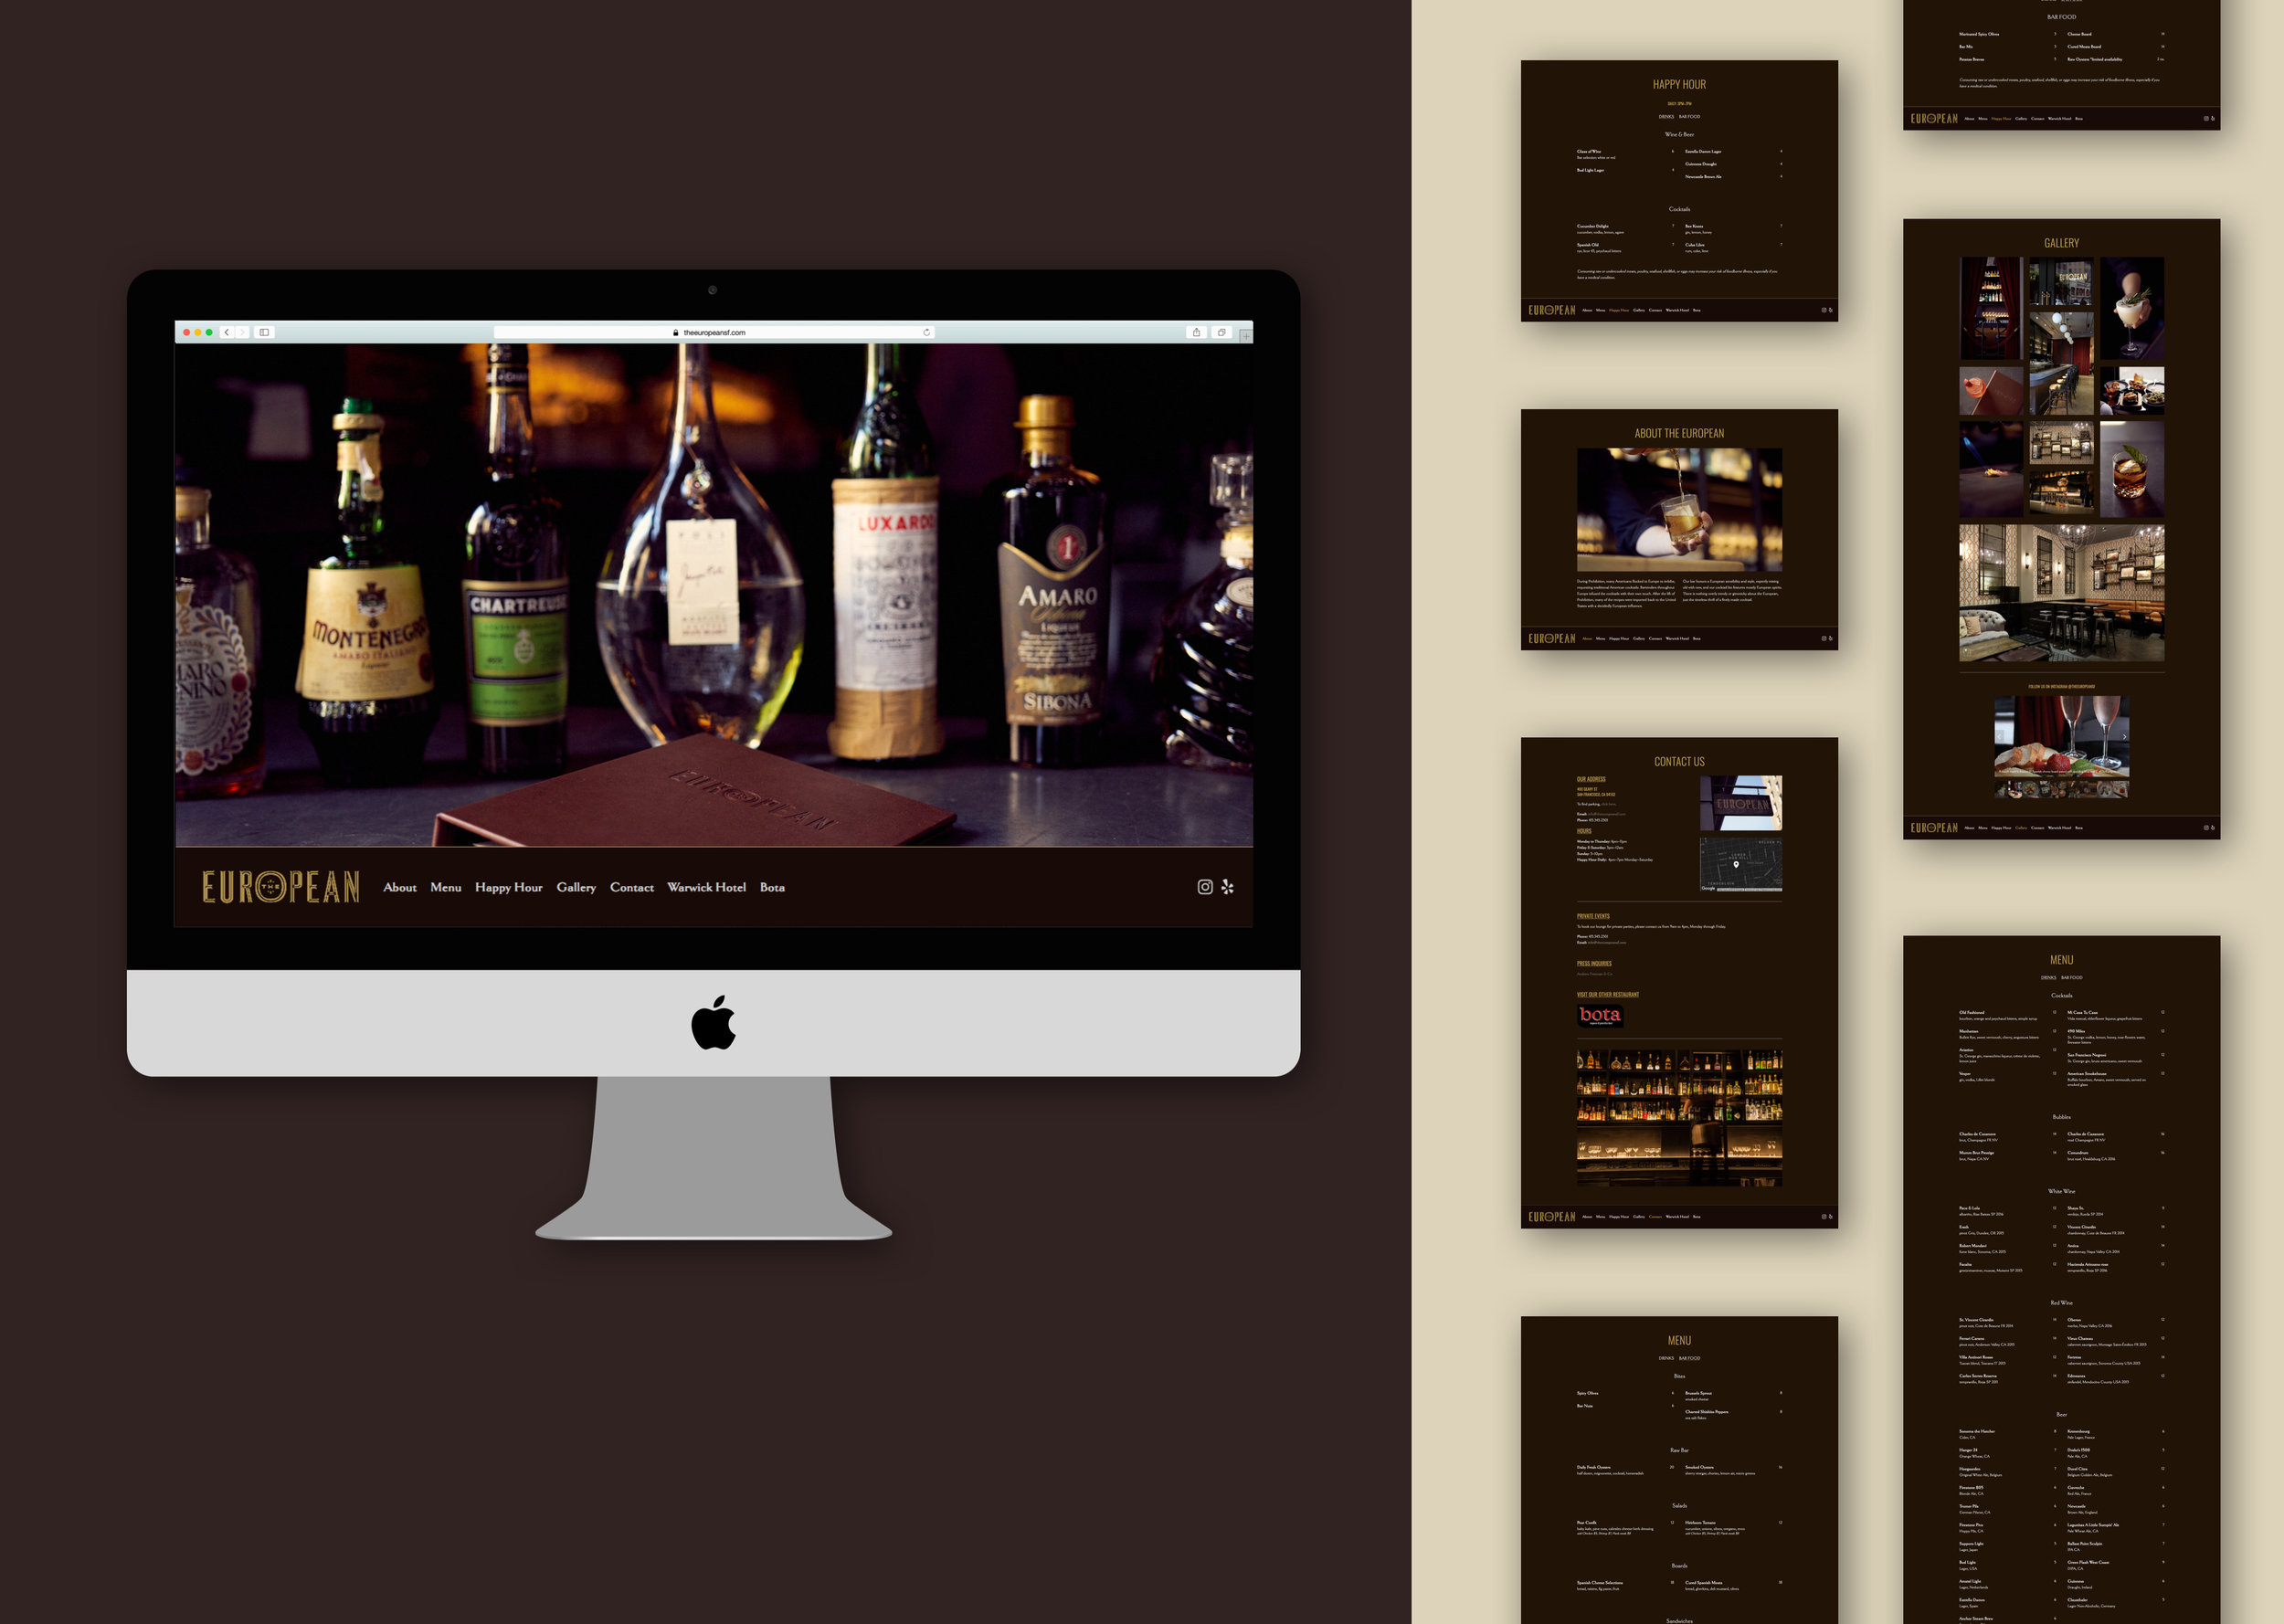 The European - Lounge and bar at the Warwick Hotel San FranciscoWebsite Redesign | IA | Squarespace